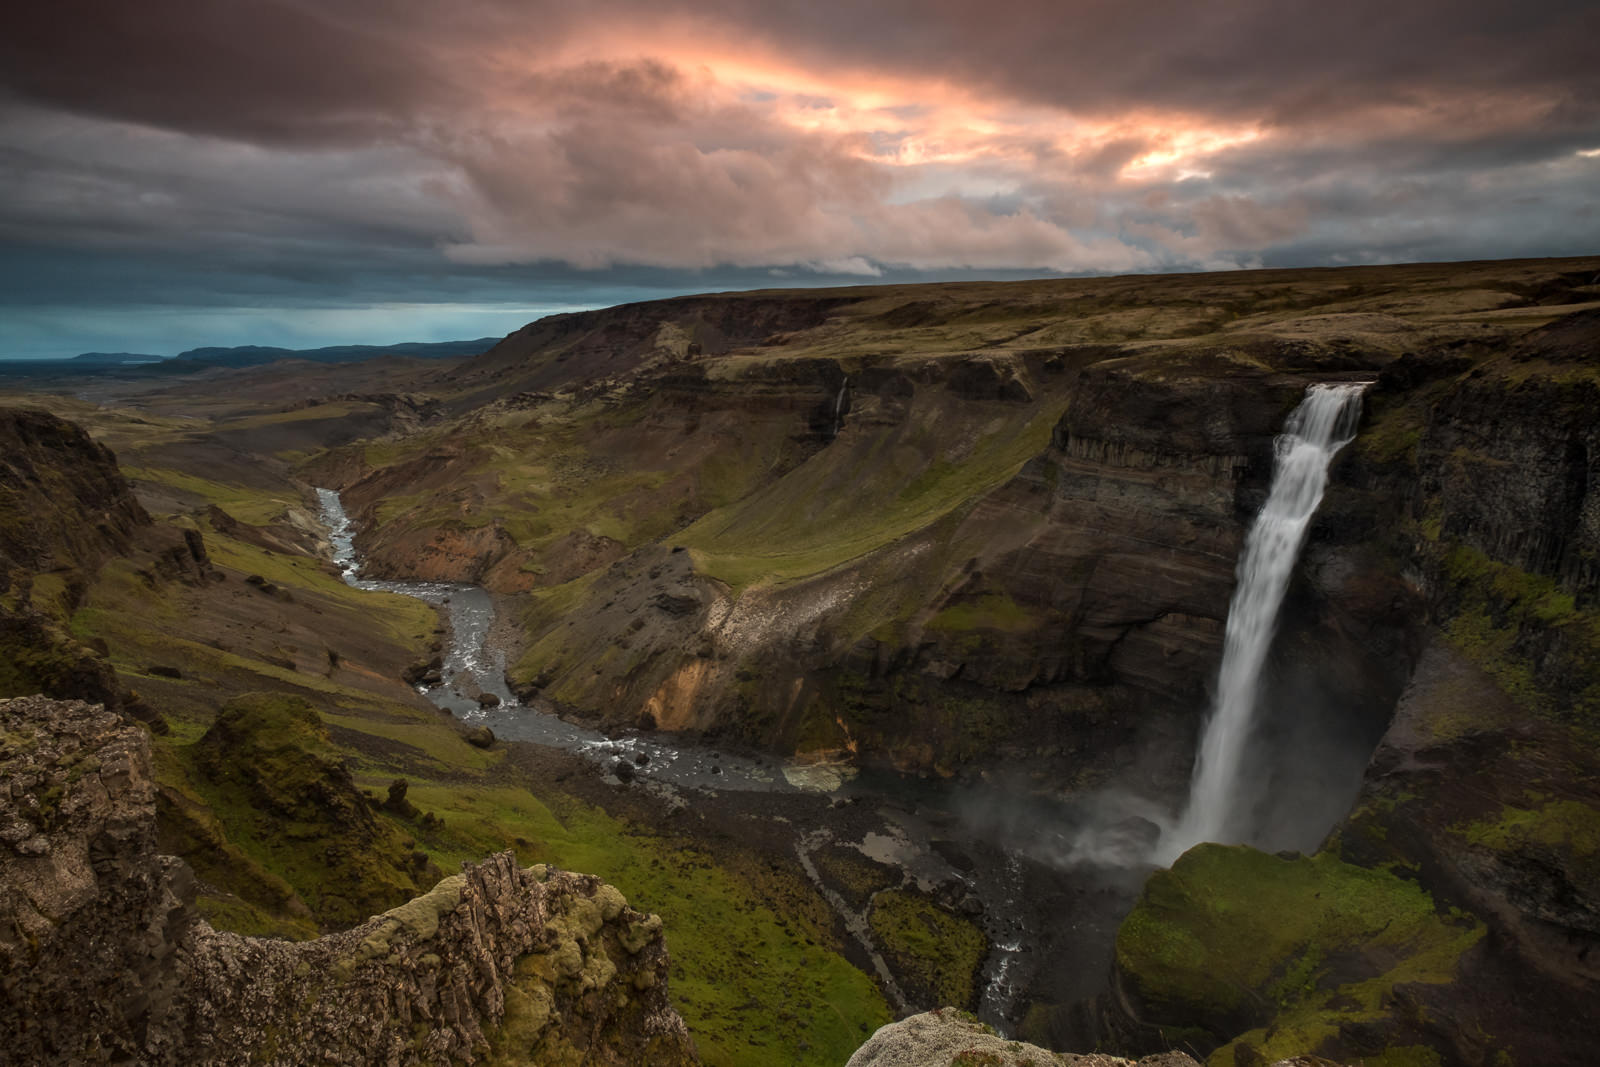 Sunset at Haifoss, the river Fossá, a tributary of Þjórsá, drops here from a height of 122 m. This is the second highest waterfall of the island. (XF 10-24mm f4 at 10mm 1/3s f11 ISO200)